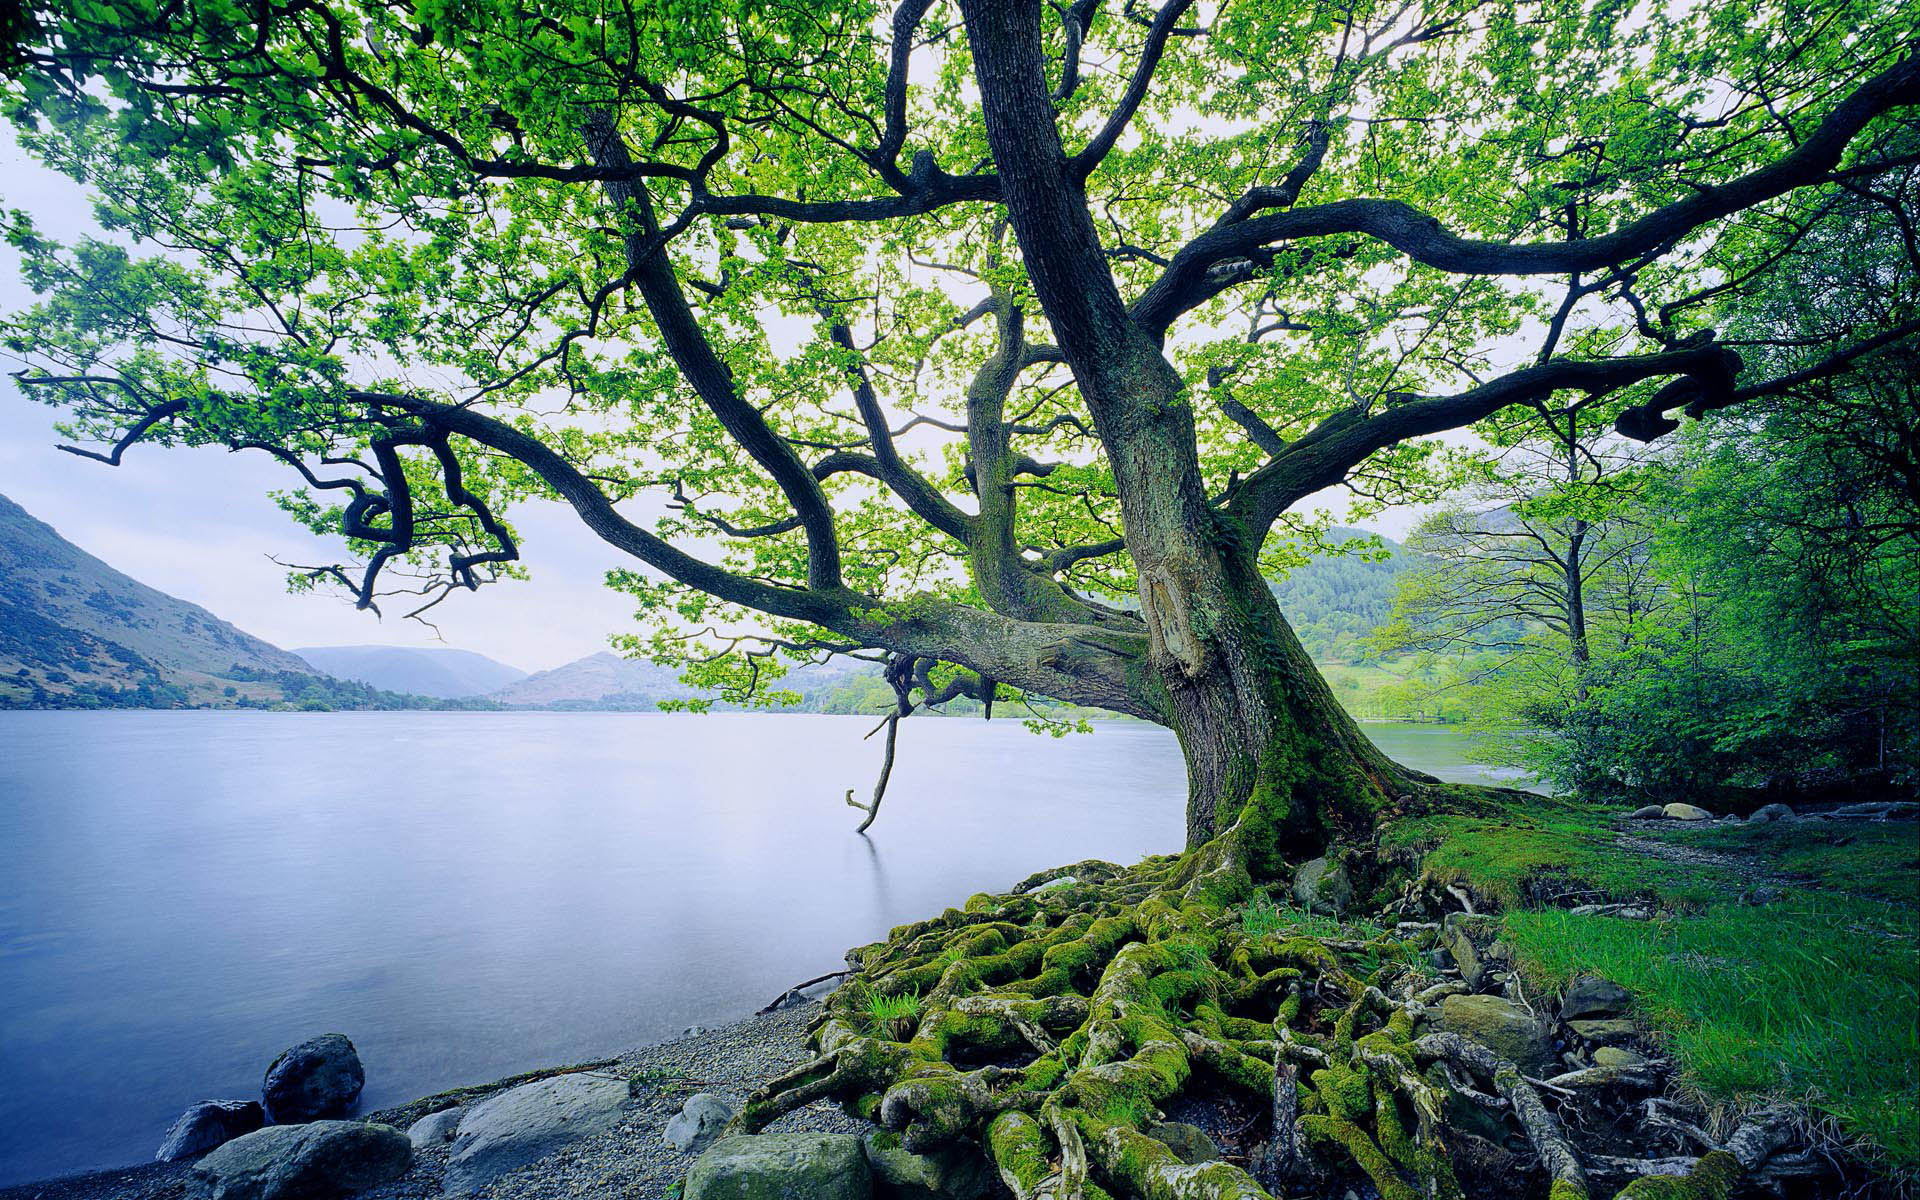 Once your download is complete, you can simply set the Beautiful Oak Tree 32967 as your background.